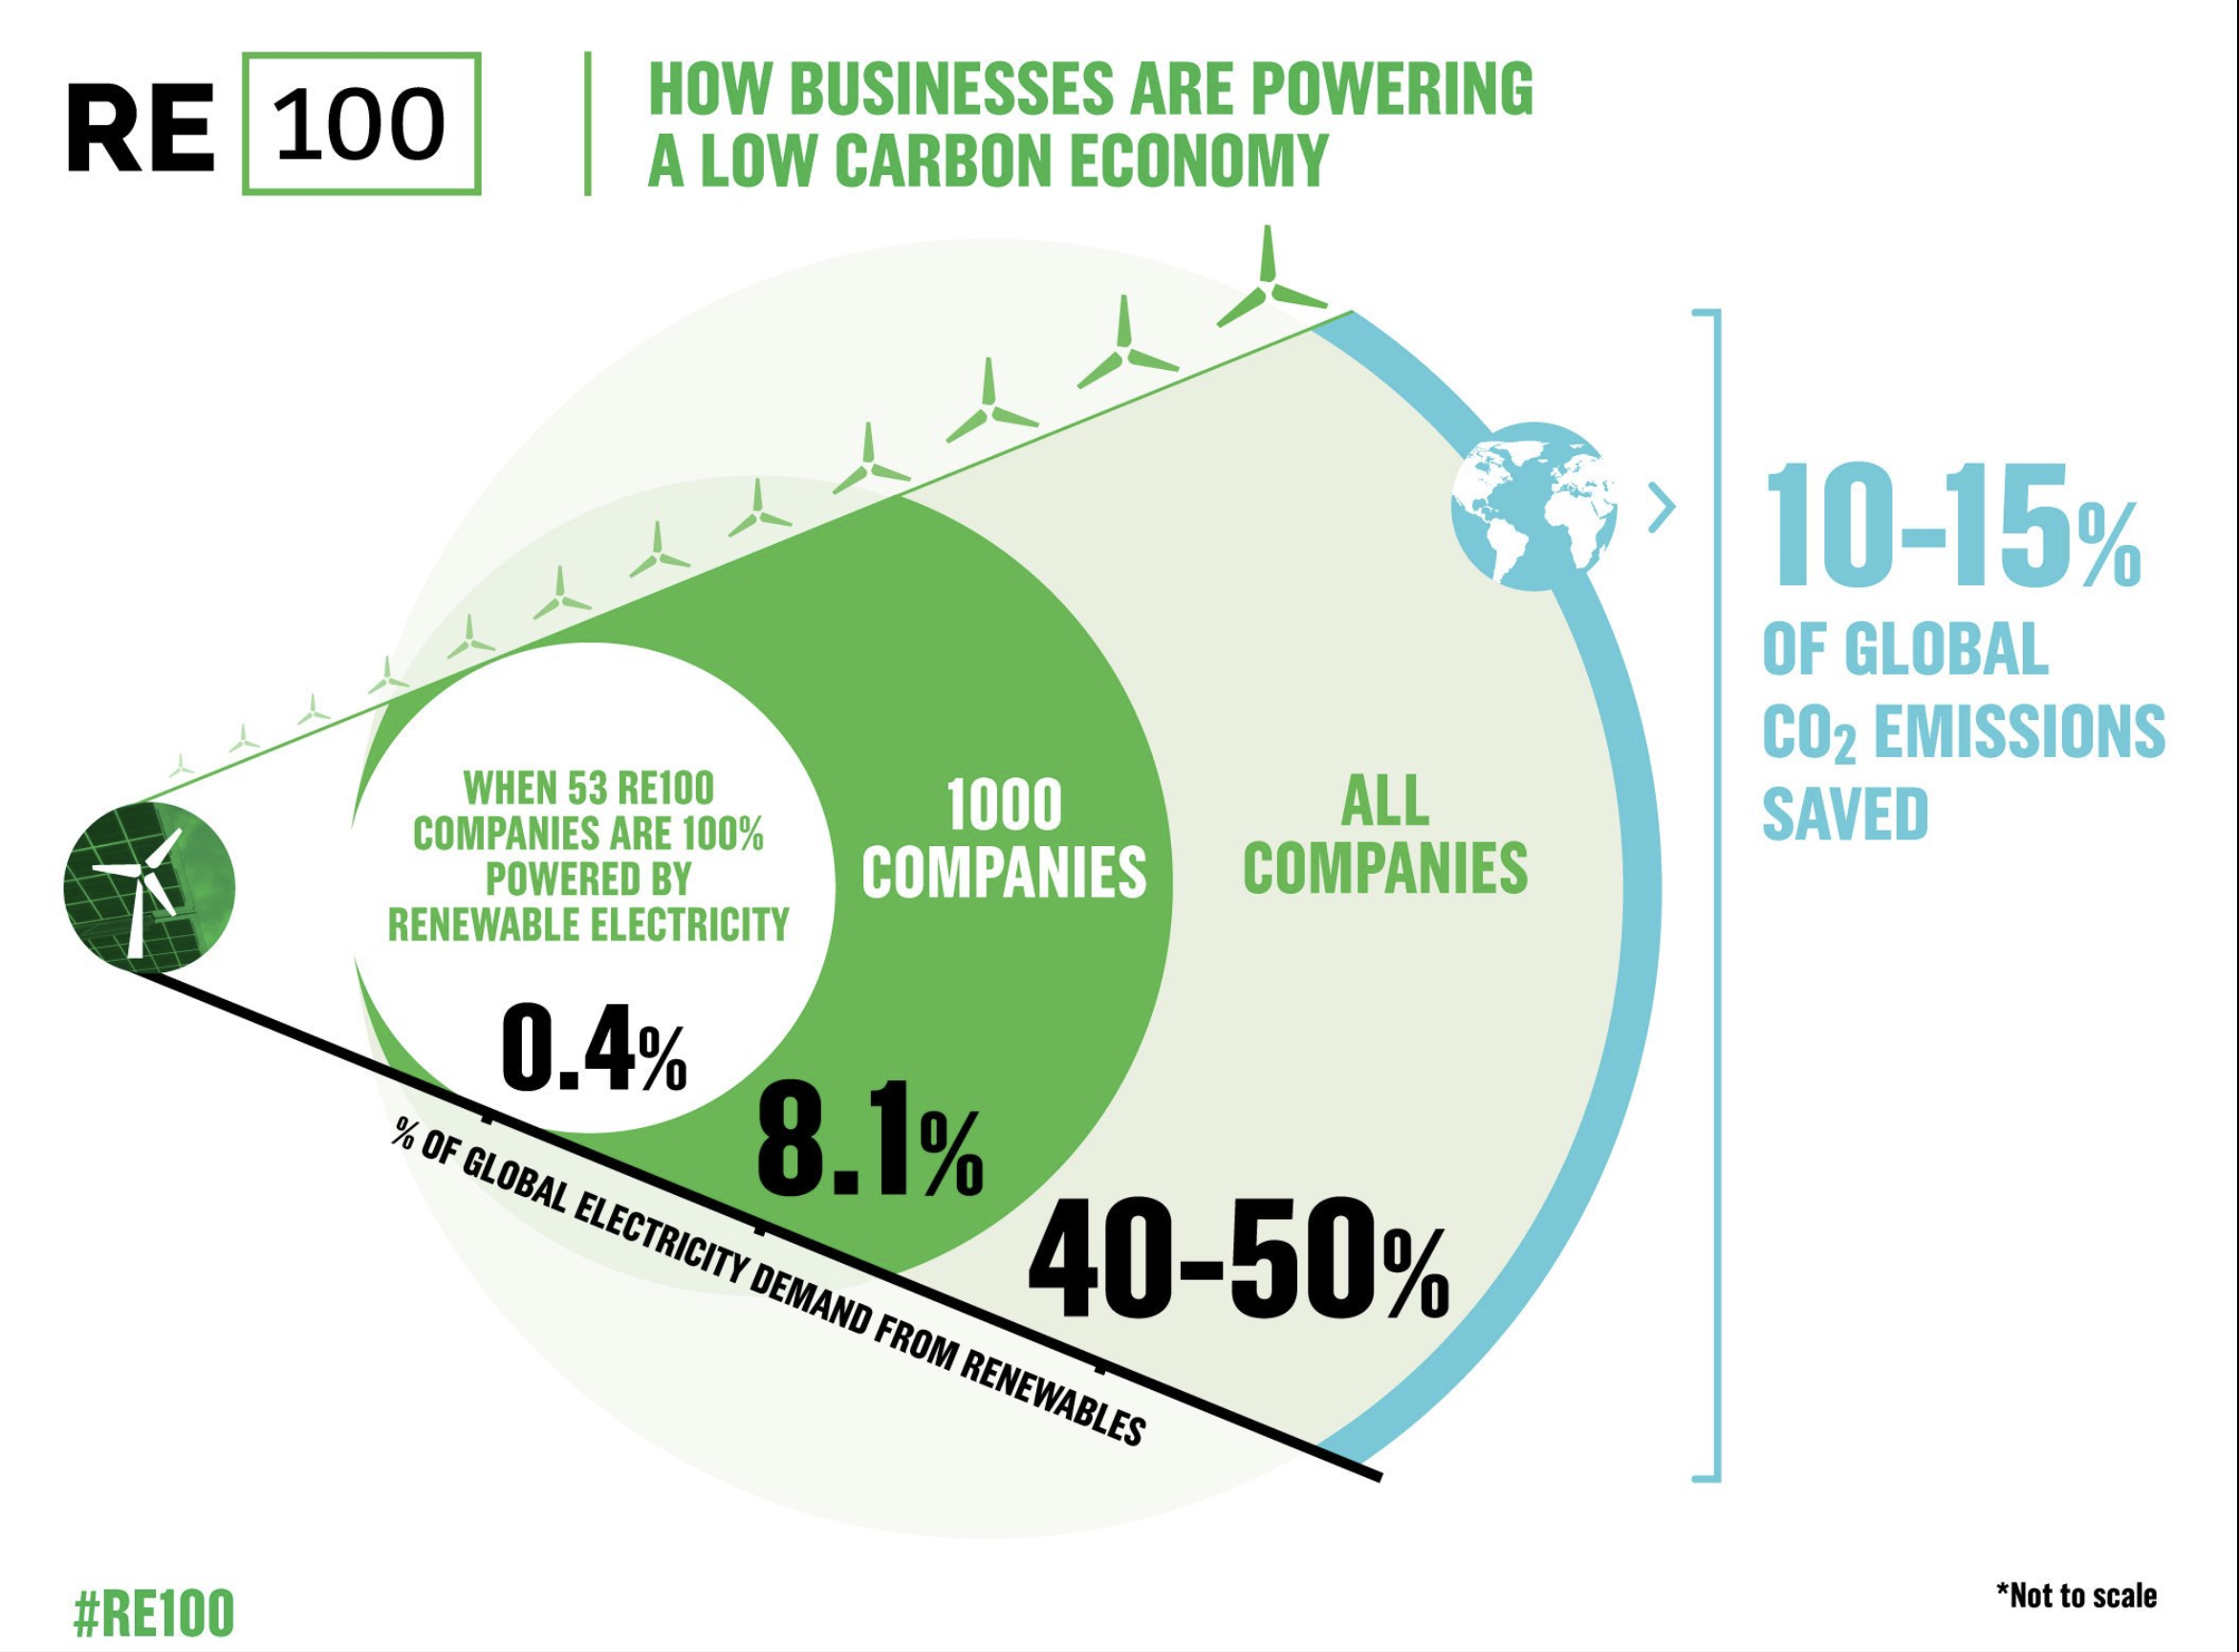 By committing to renewable energy, businesses can make a big dent in global emissions